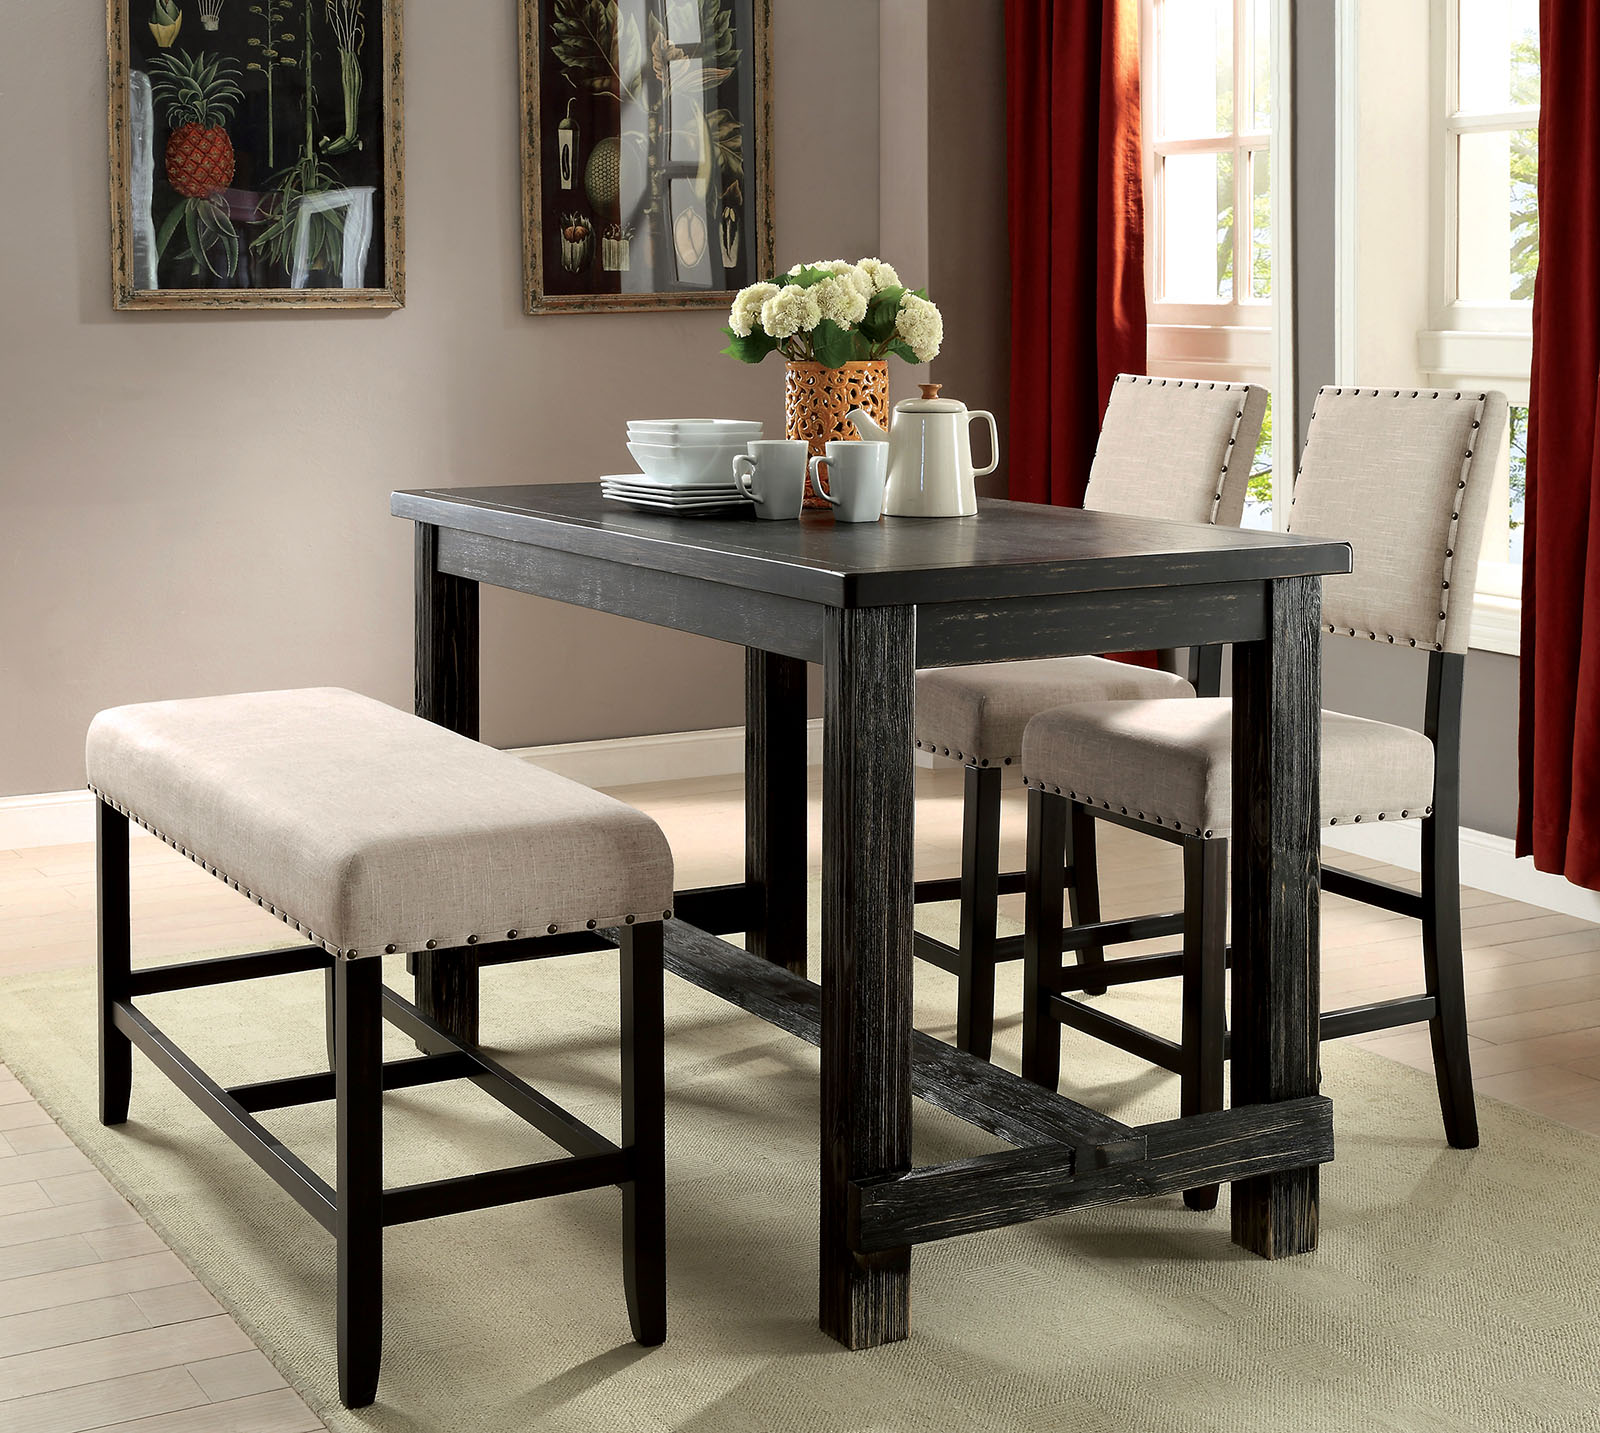 Sania Ii Antique Black Pub Table Collection Las Vegas